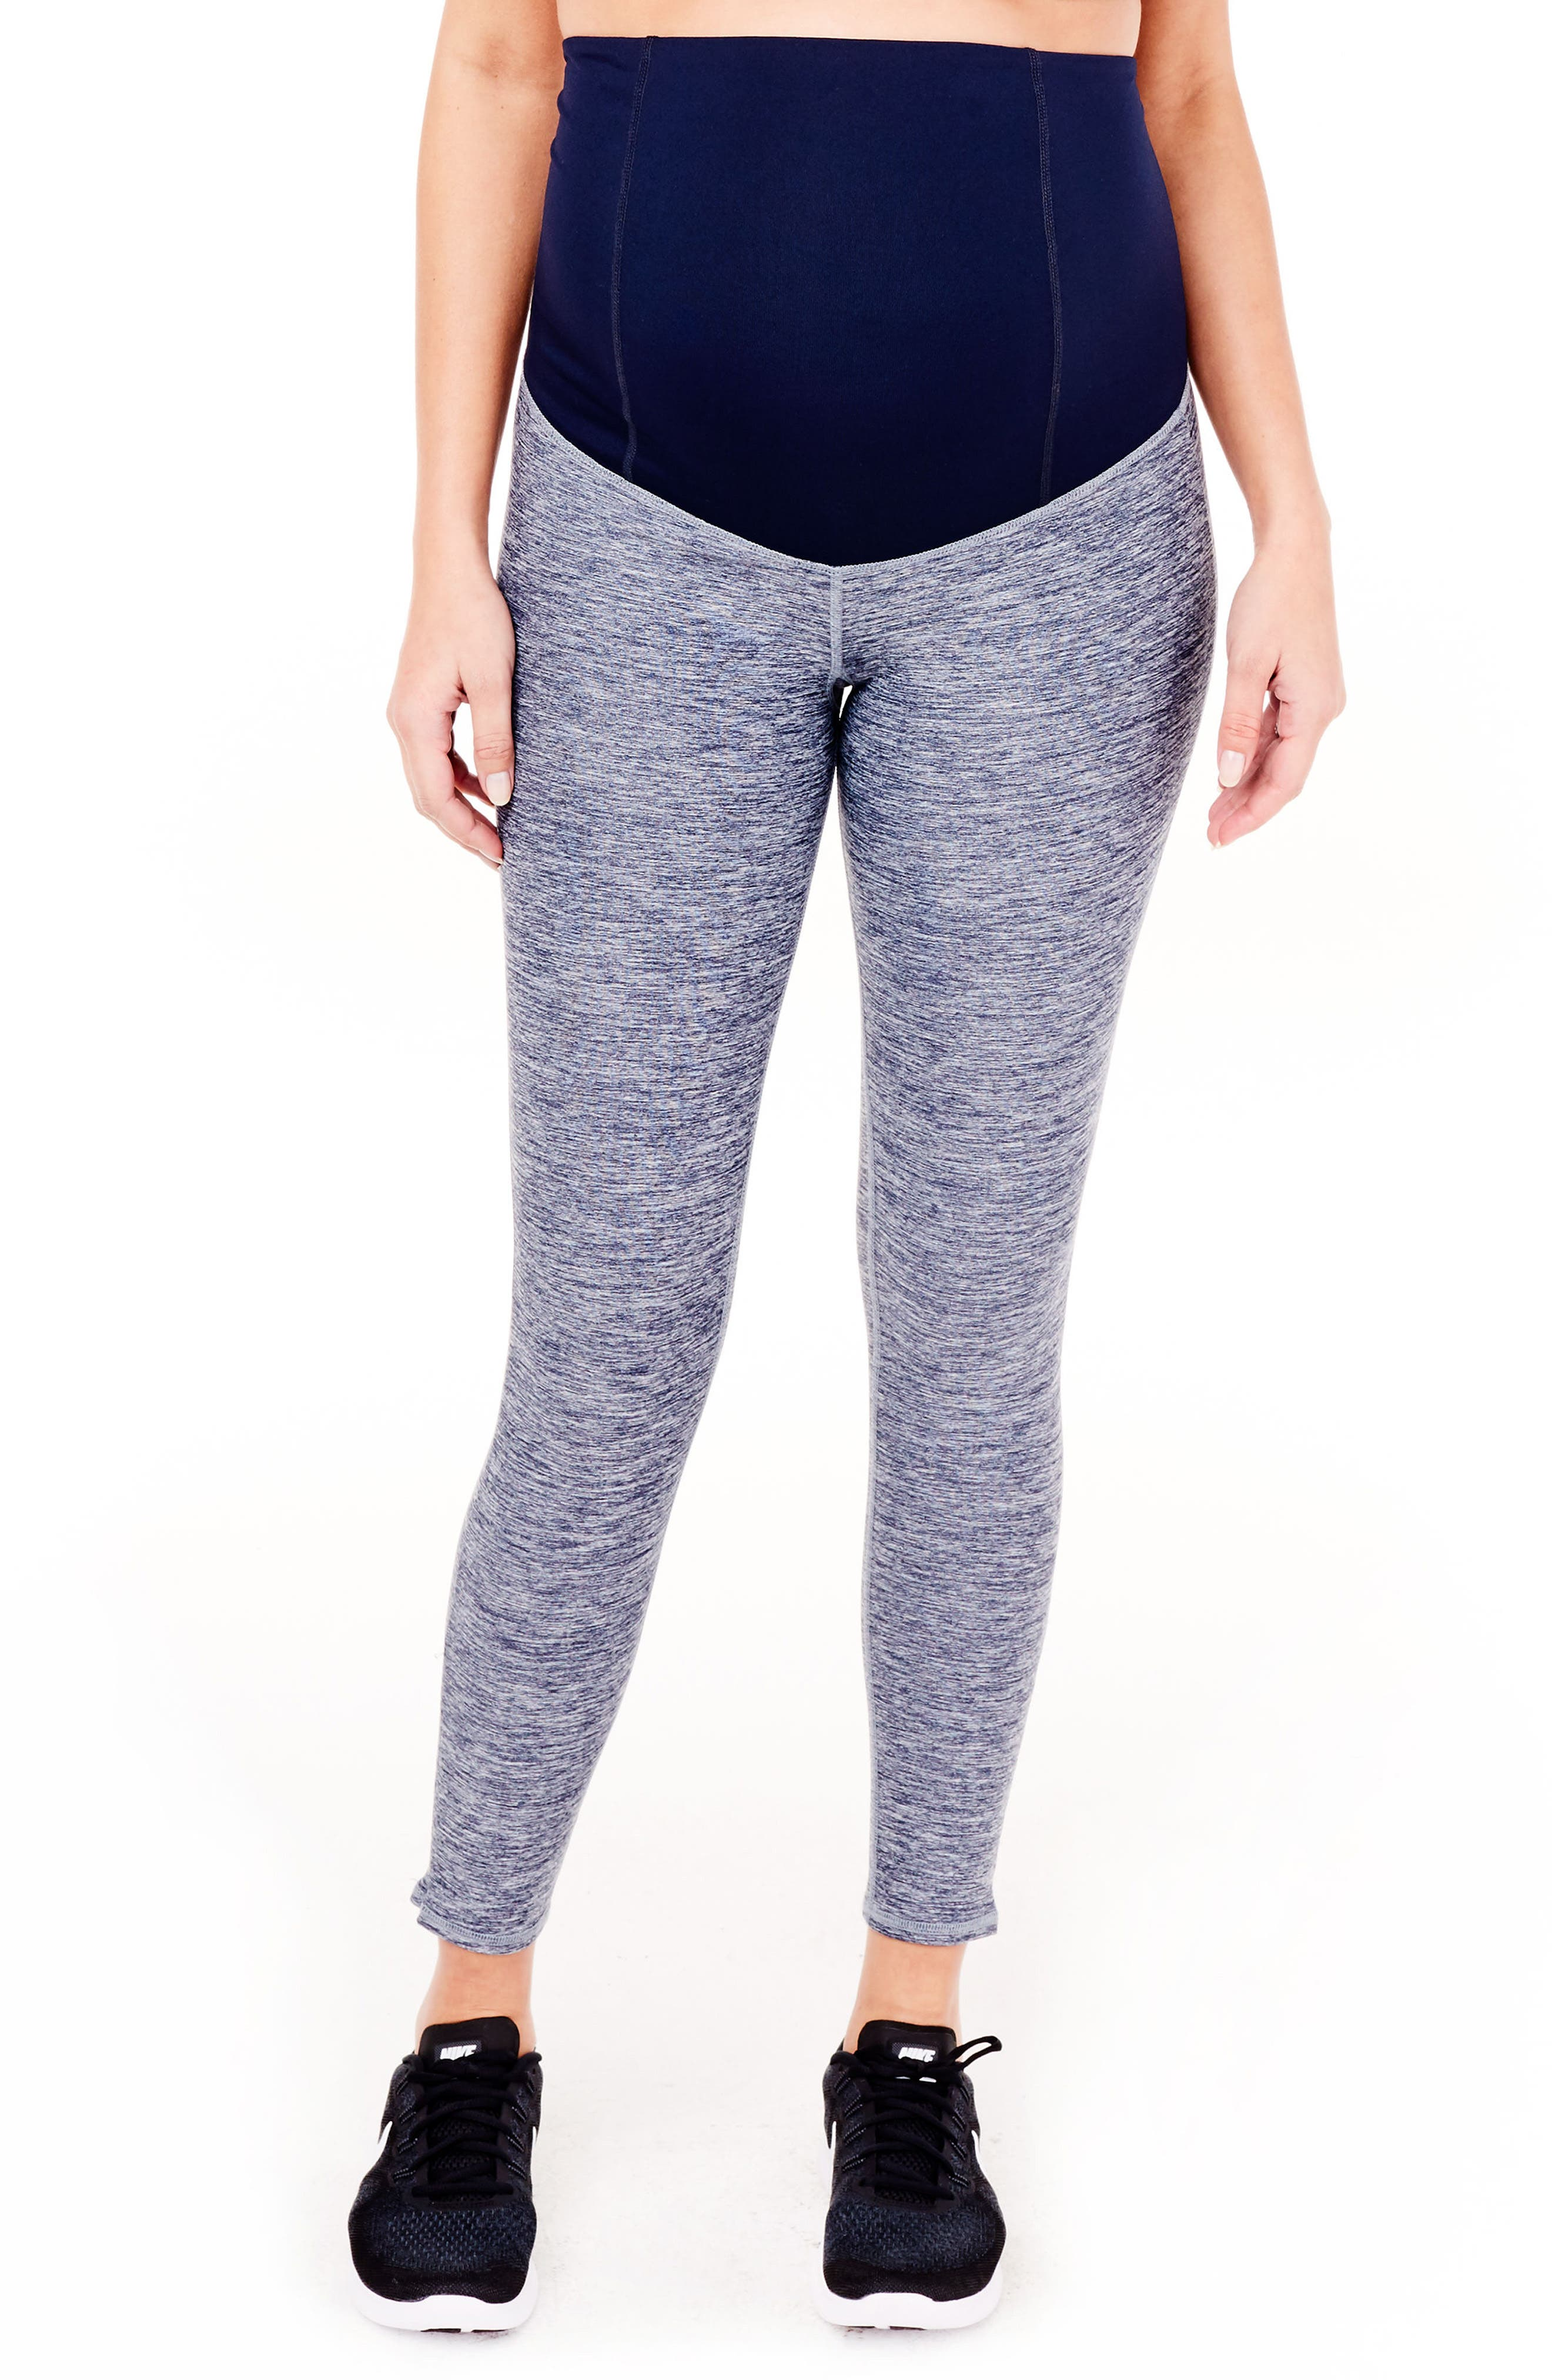 'Active' Maternity Leggings with Crossover Panel,                             Main thumbnail 1, color,                             417